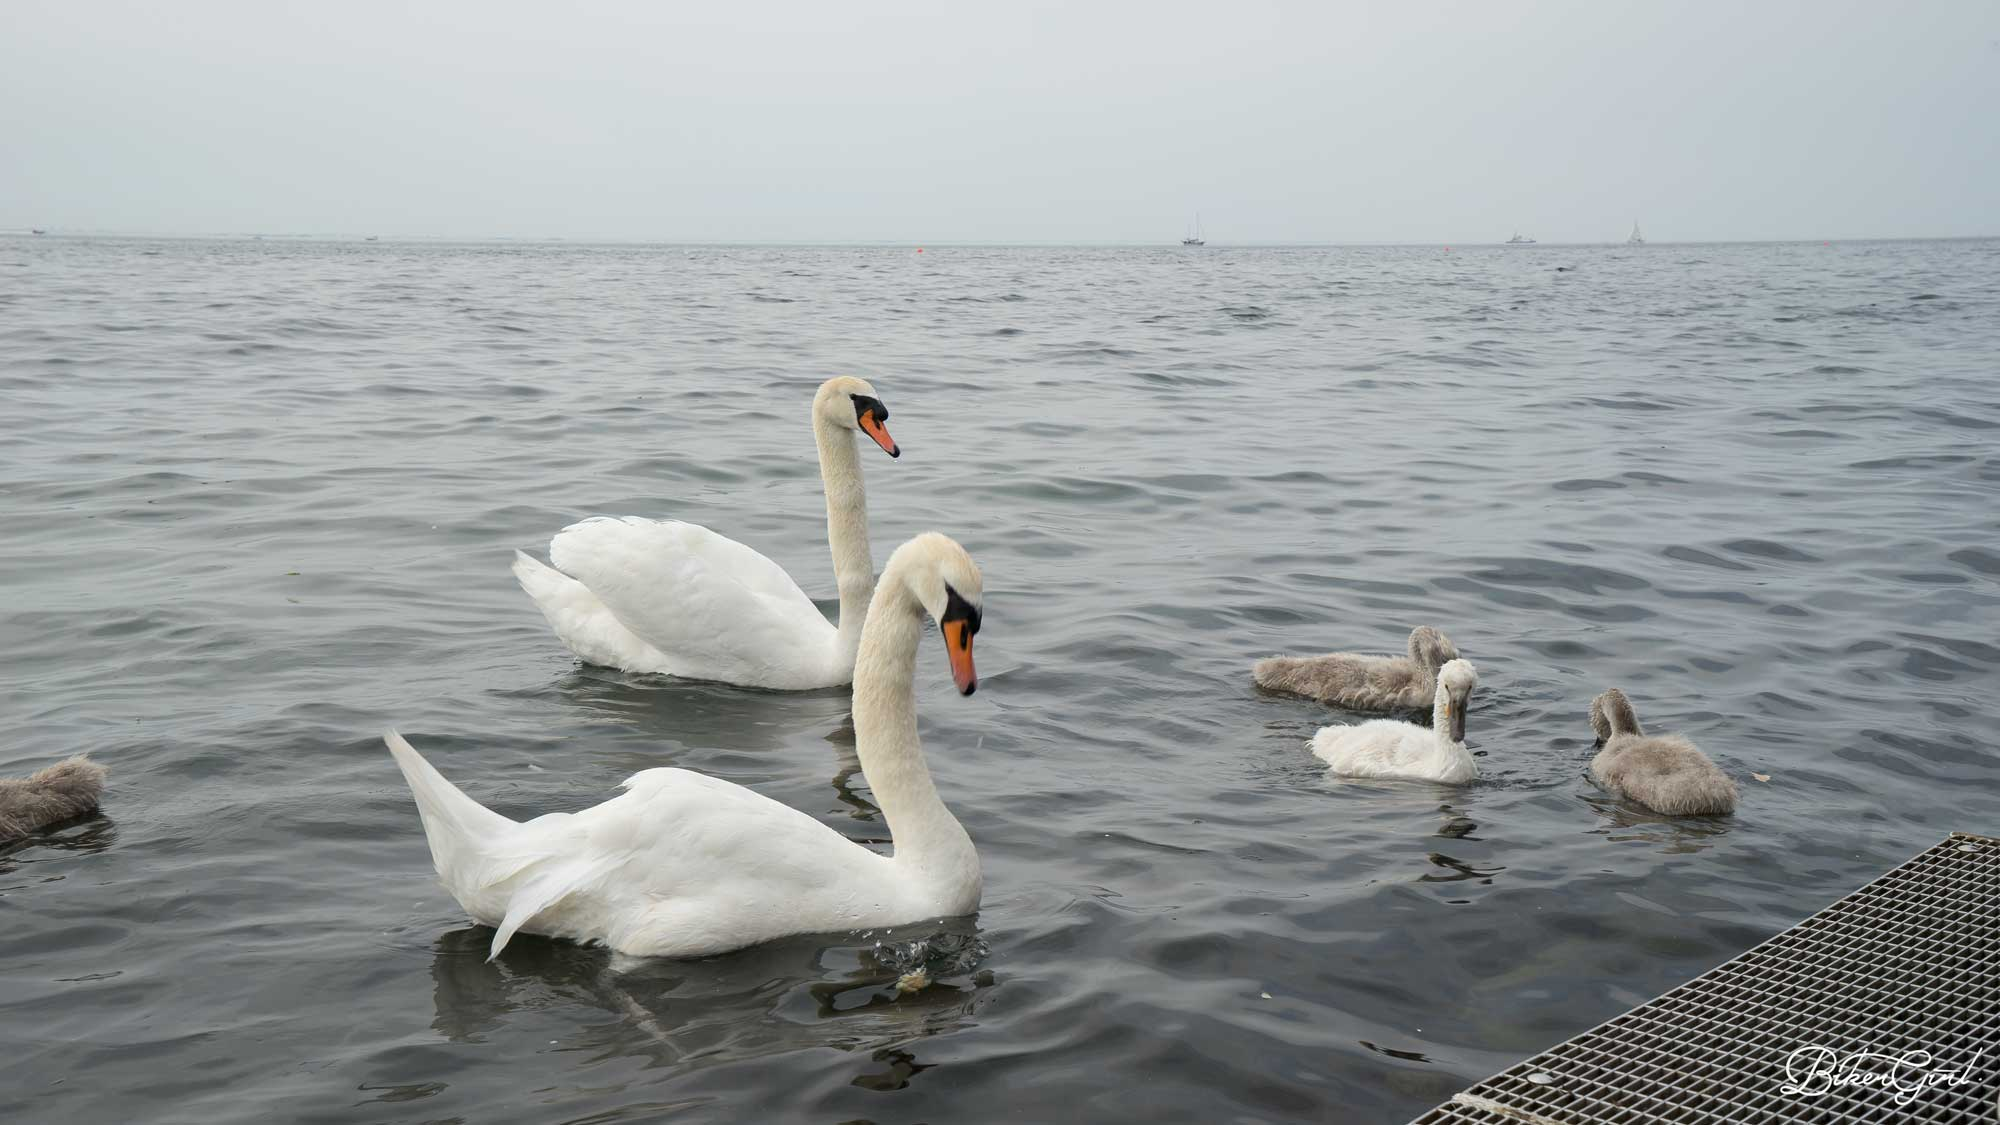 Swimming with the swans